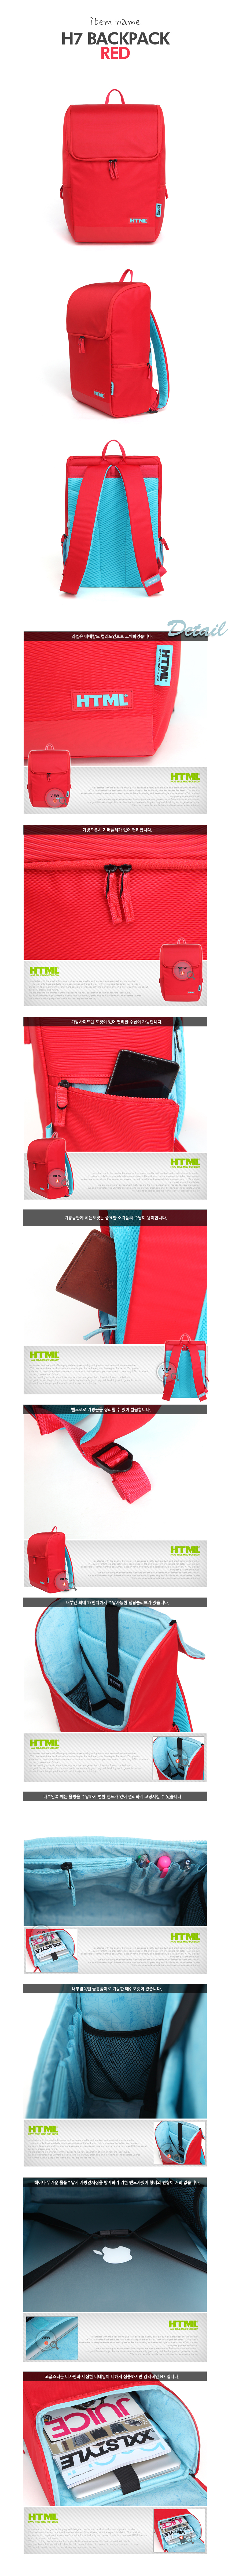 HTML - H7 Backpack (Red)